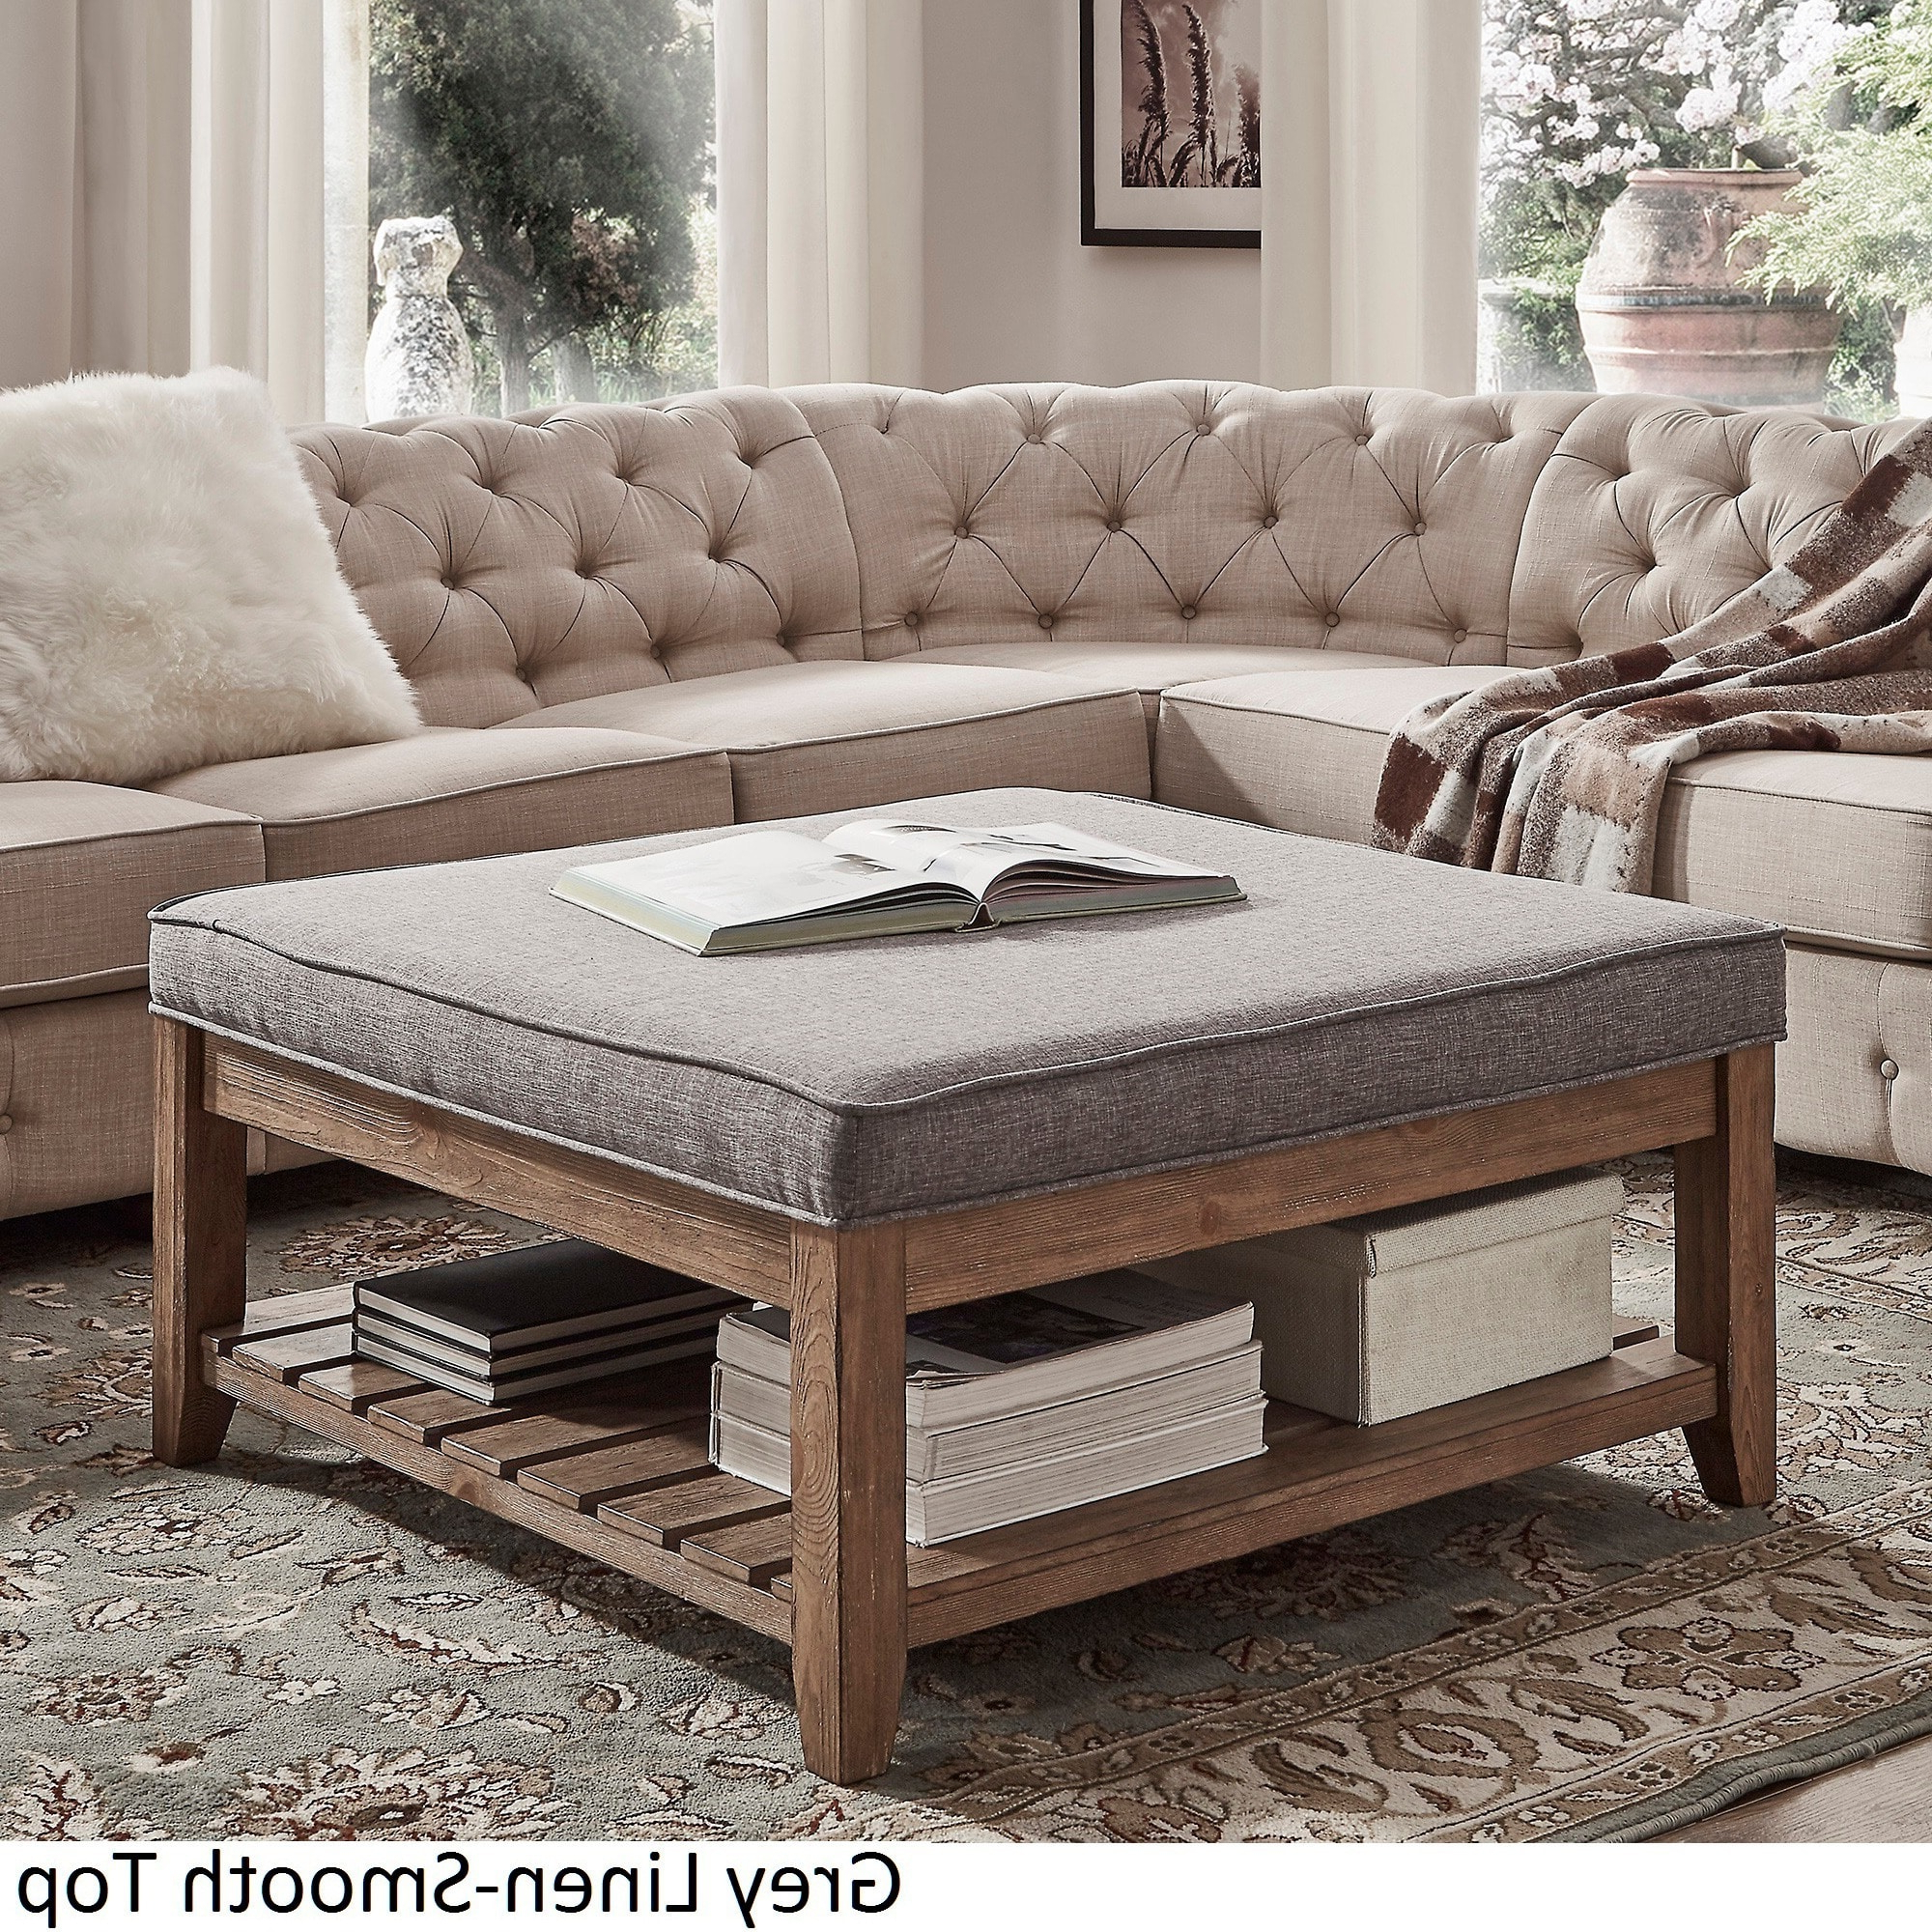 Most Up To Date Lennon Pine Planked Storage Ottoman Coffee Tables Intended For Inspire Q Lennon Pine Planked Storage Ottoman Coffee Tableartisan (View 8 of 20)